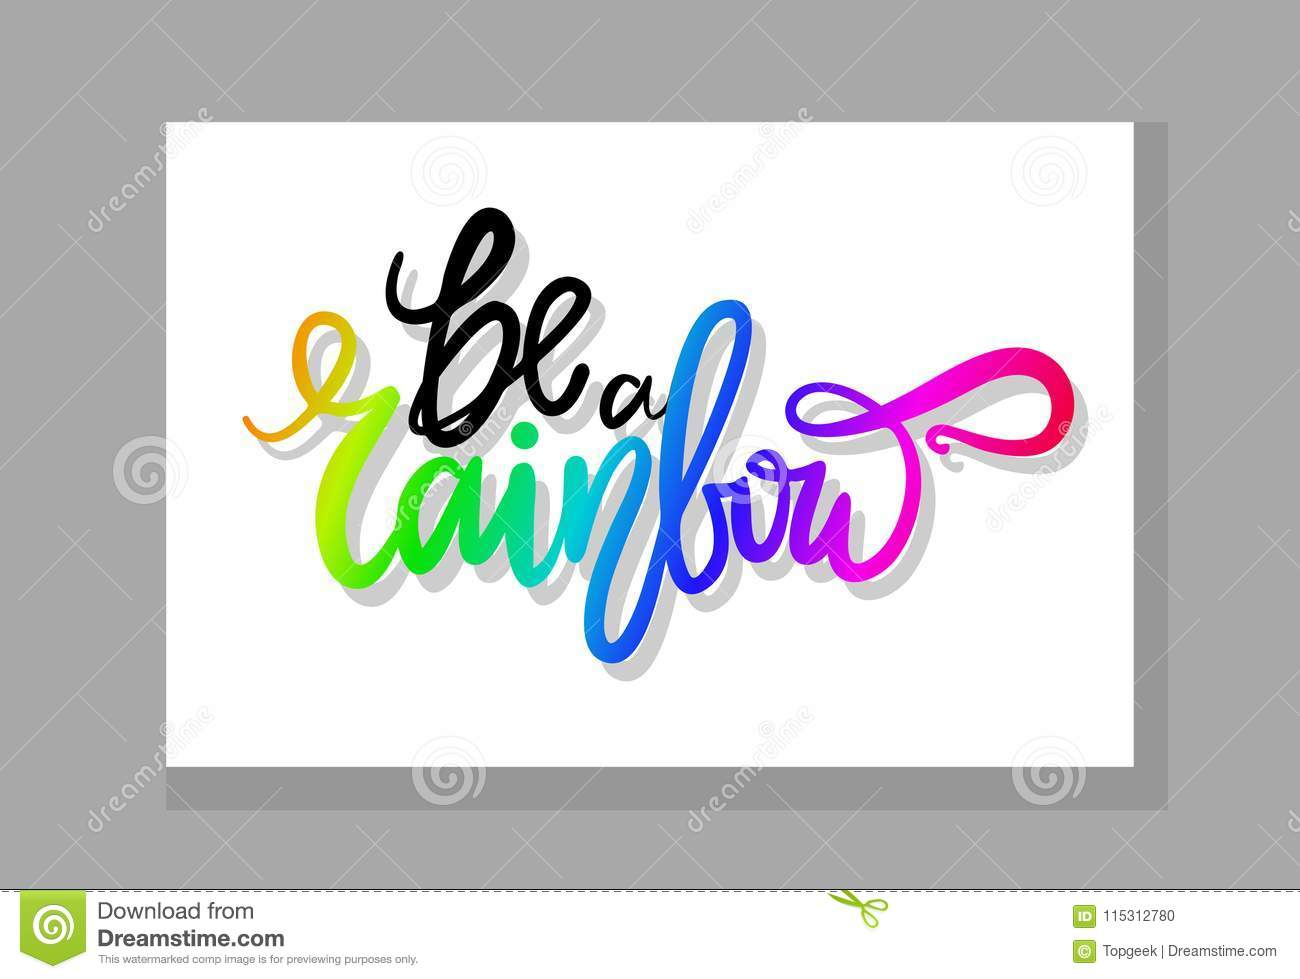 Be a rainbow graffiti with smooth patterned font isolated in grey frame vector illustration with bright colorful beautiful sign